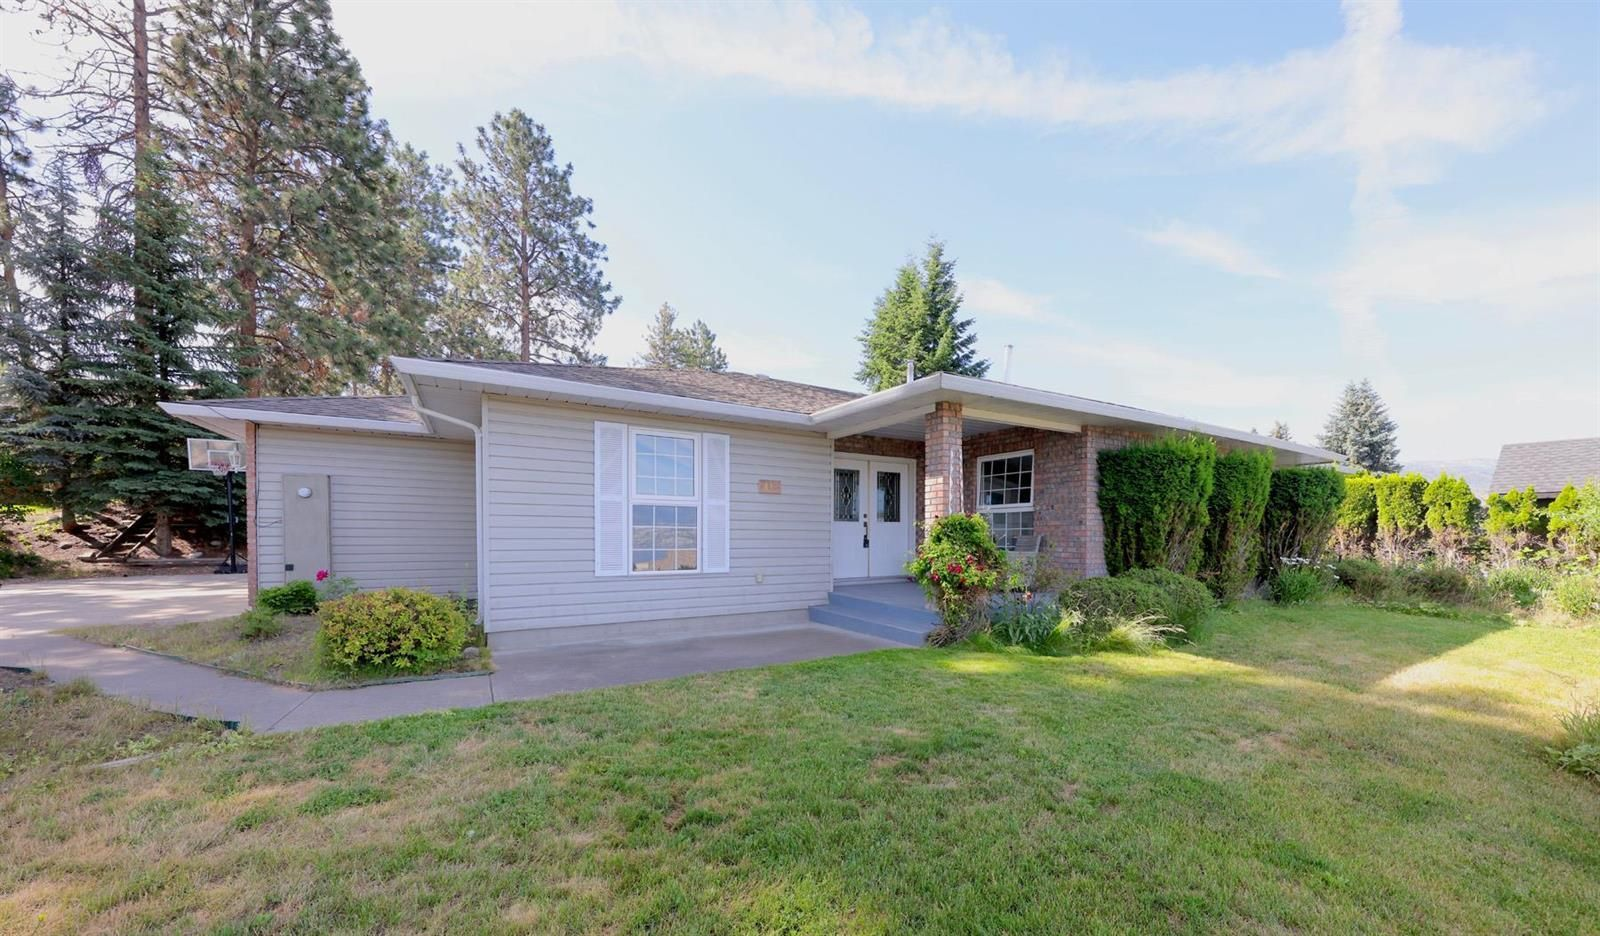 Main Photo: 448 Curlew Drive in Kelowna: Upper Mission House for sale (Mission)  : MLS®# 10235172